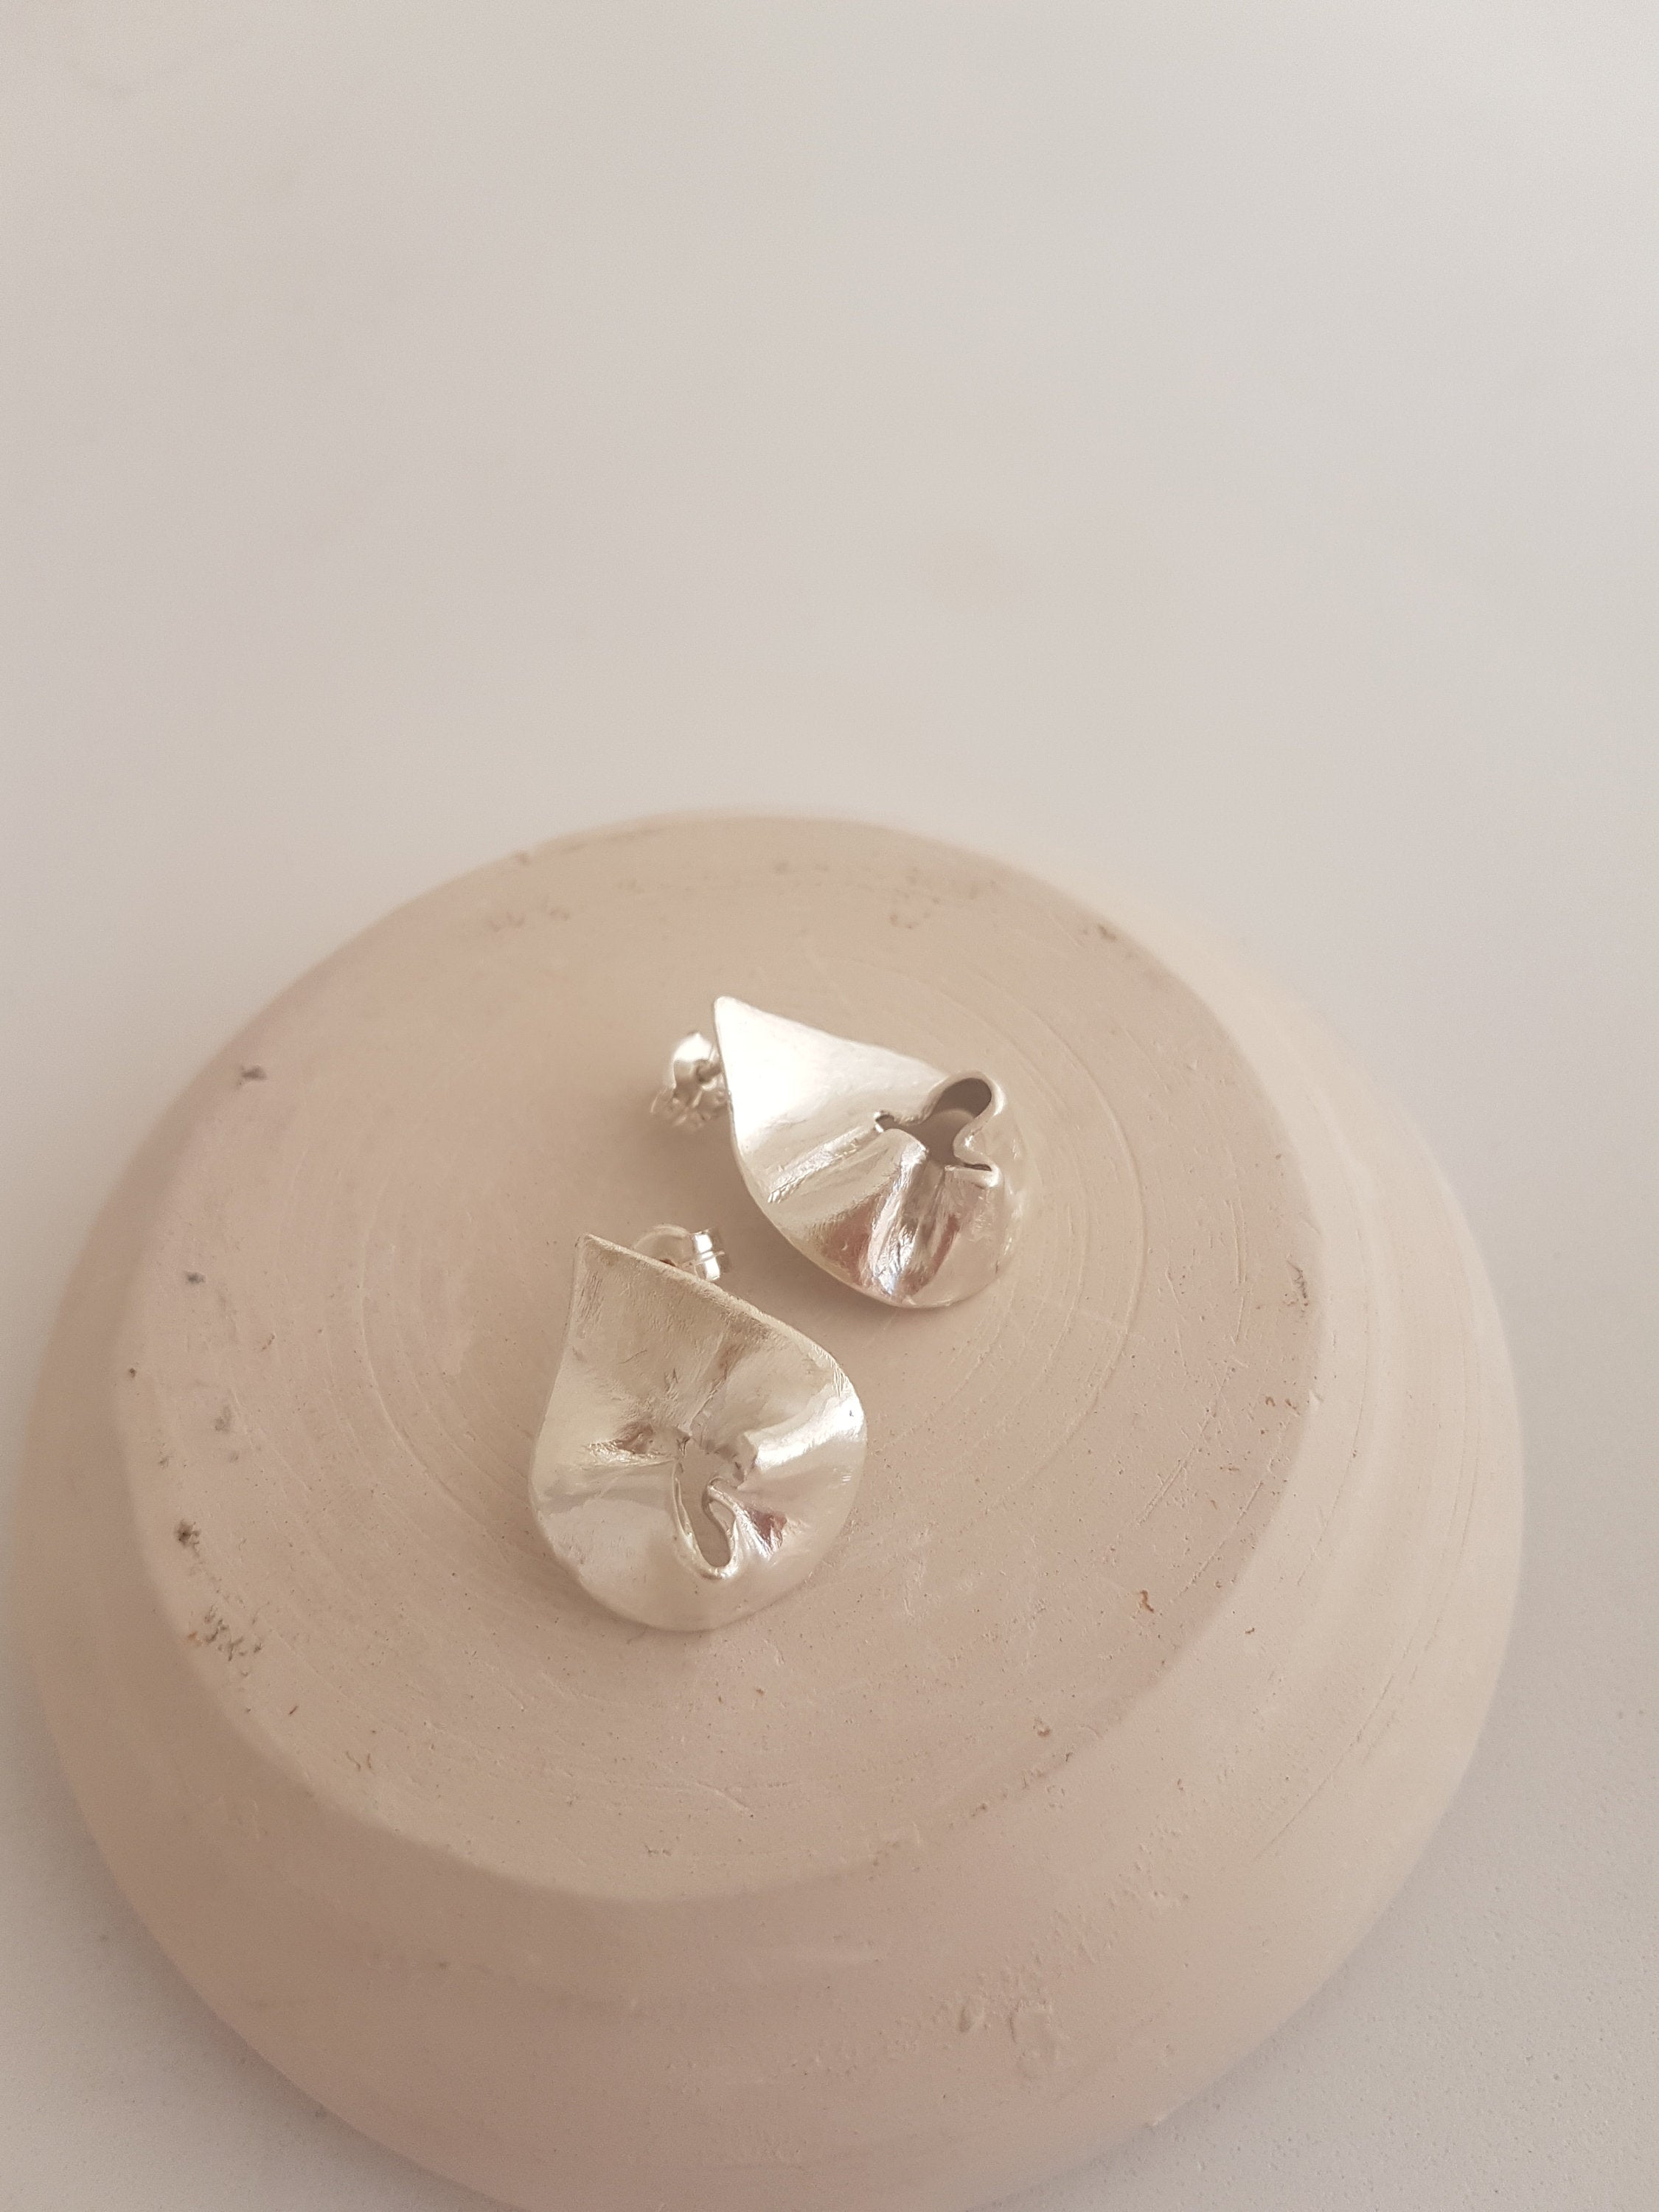 Unique wavy earrings in sterling silver. Elegant earrings with soft shapes medium size.